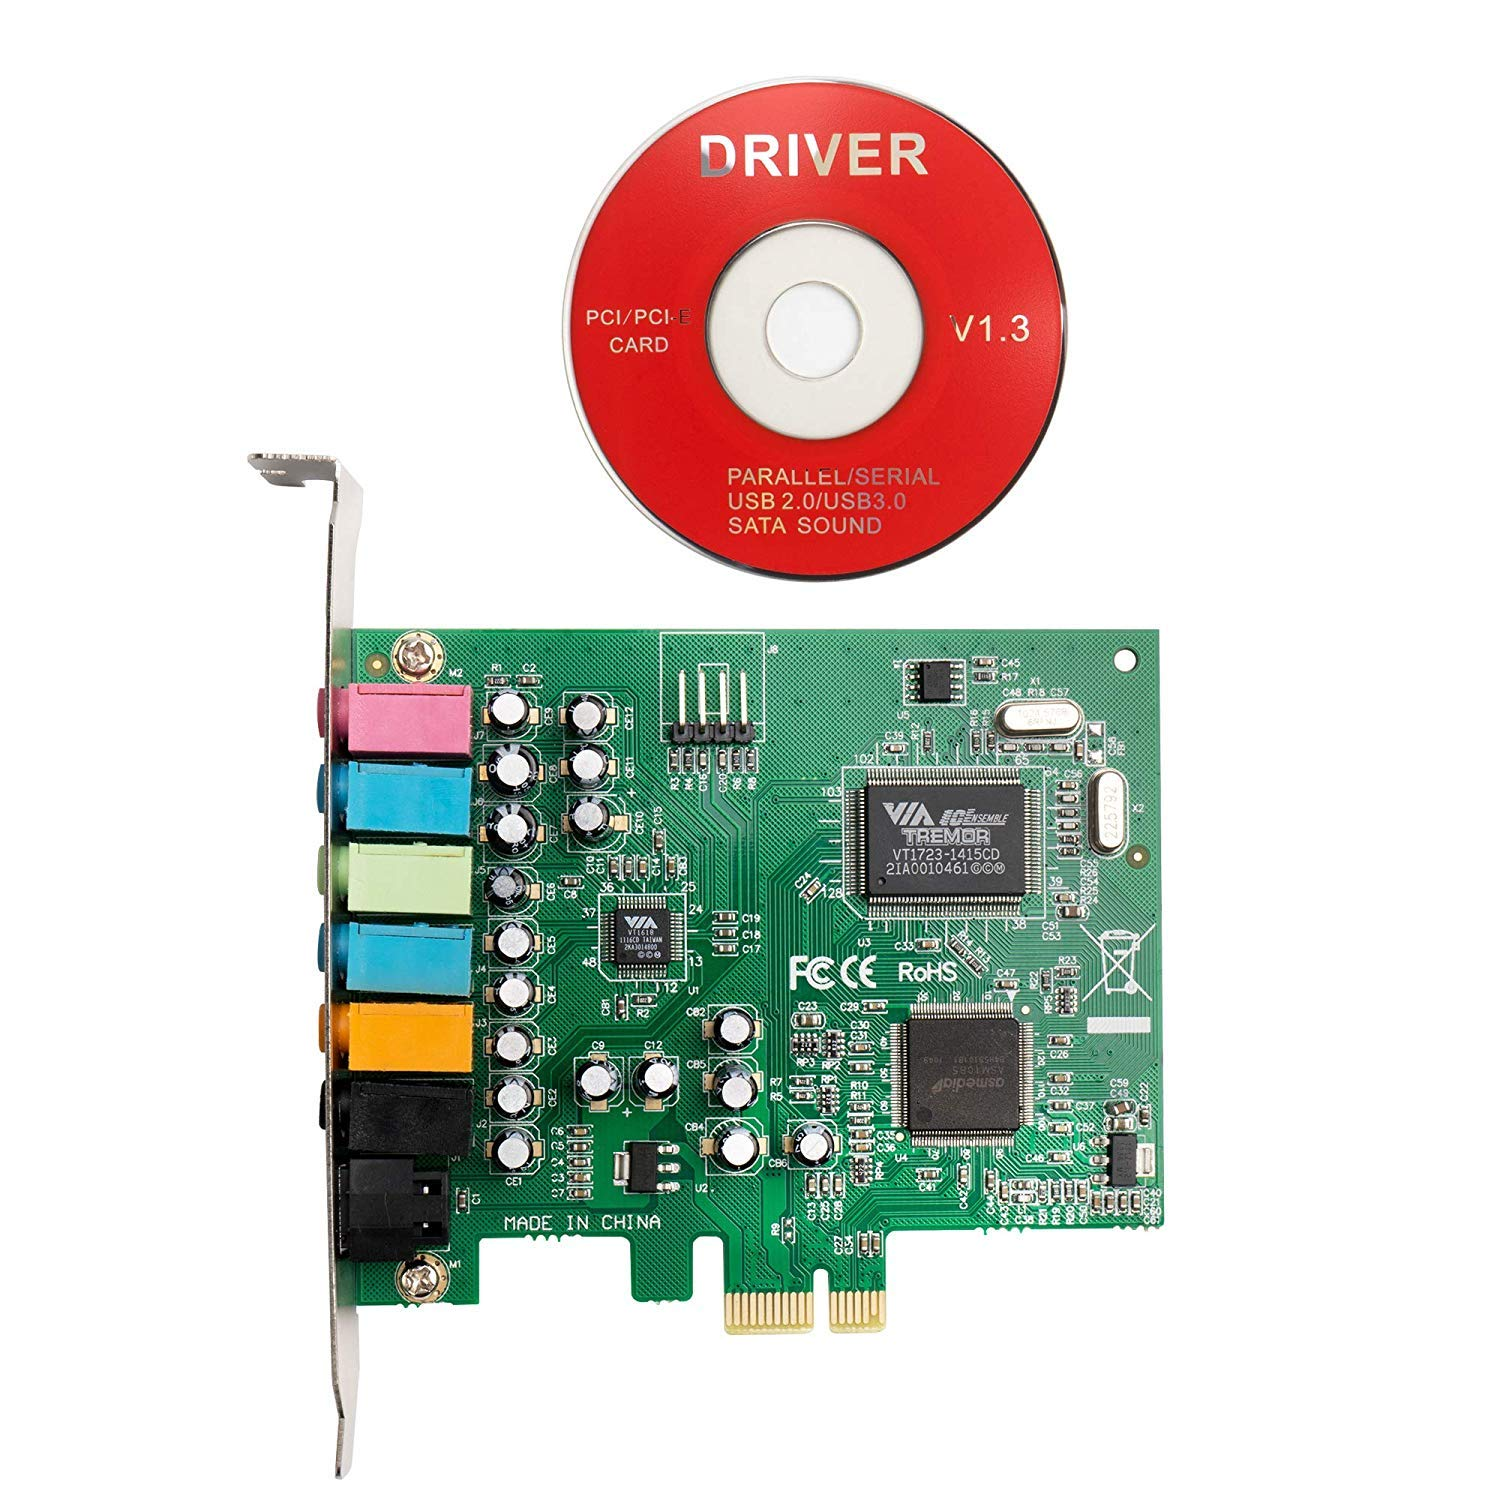 SHINESTAR Sound Card with S/PDIF Digital Optical Out, PCIe Sound Card for PC Windows 10, 7.1 Channel PCI-e Audio Card, 3D Surround Stereo, Support Windows XP / 7/8 by SHINESTAR (Image #4)